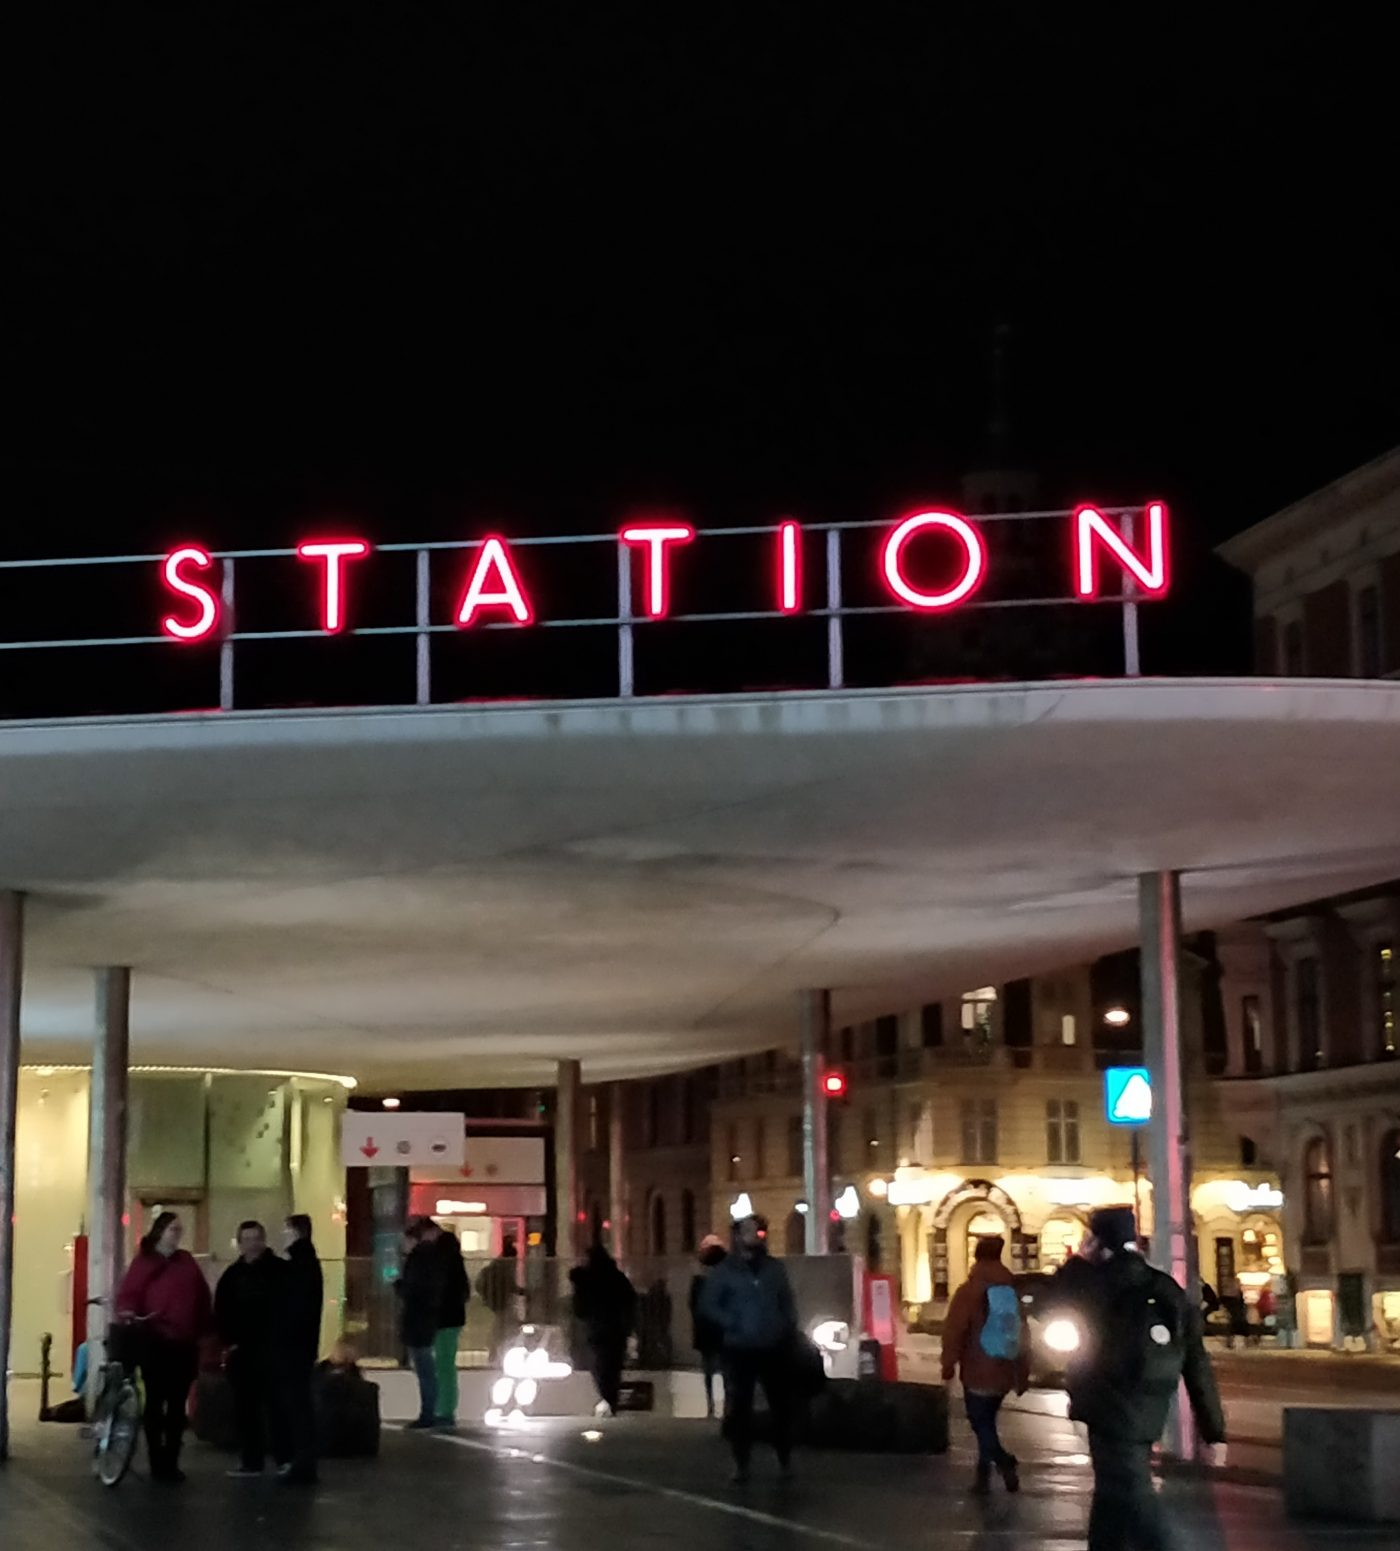 Nørreport station, aftenstemning.